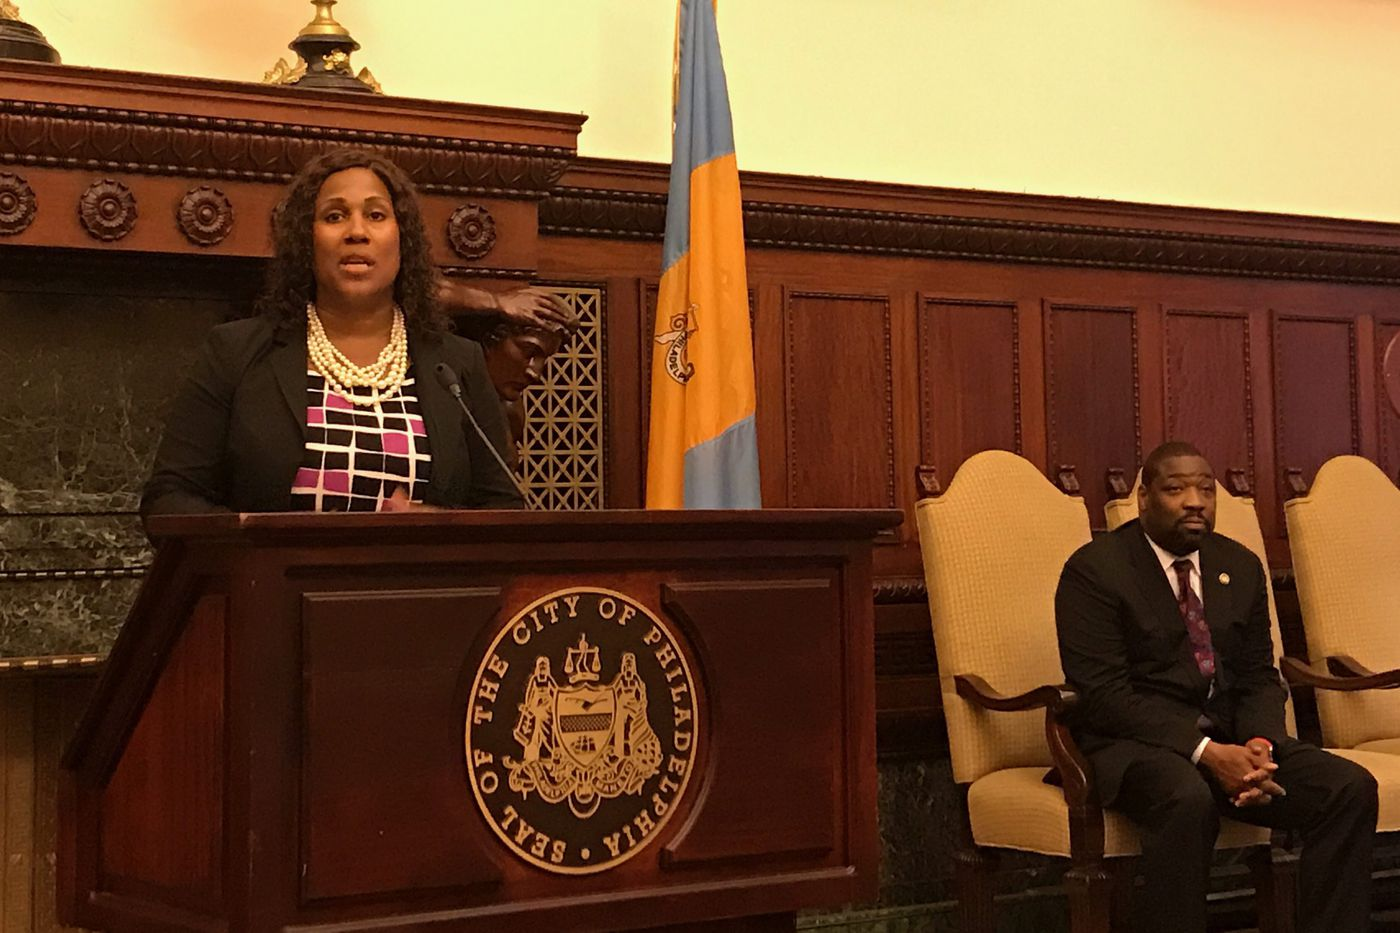 Philly courts, under fire over detainer rules, simply deleted them. So what's next?